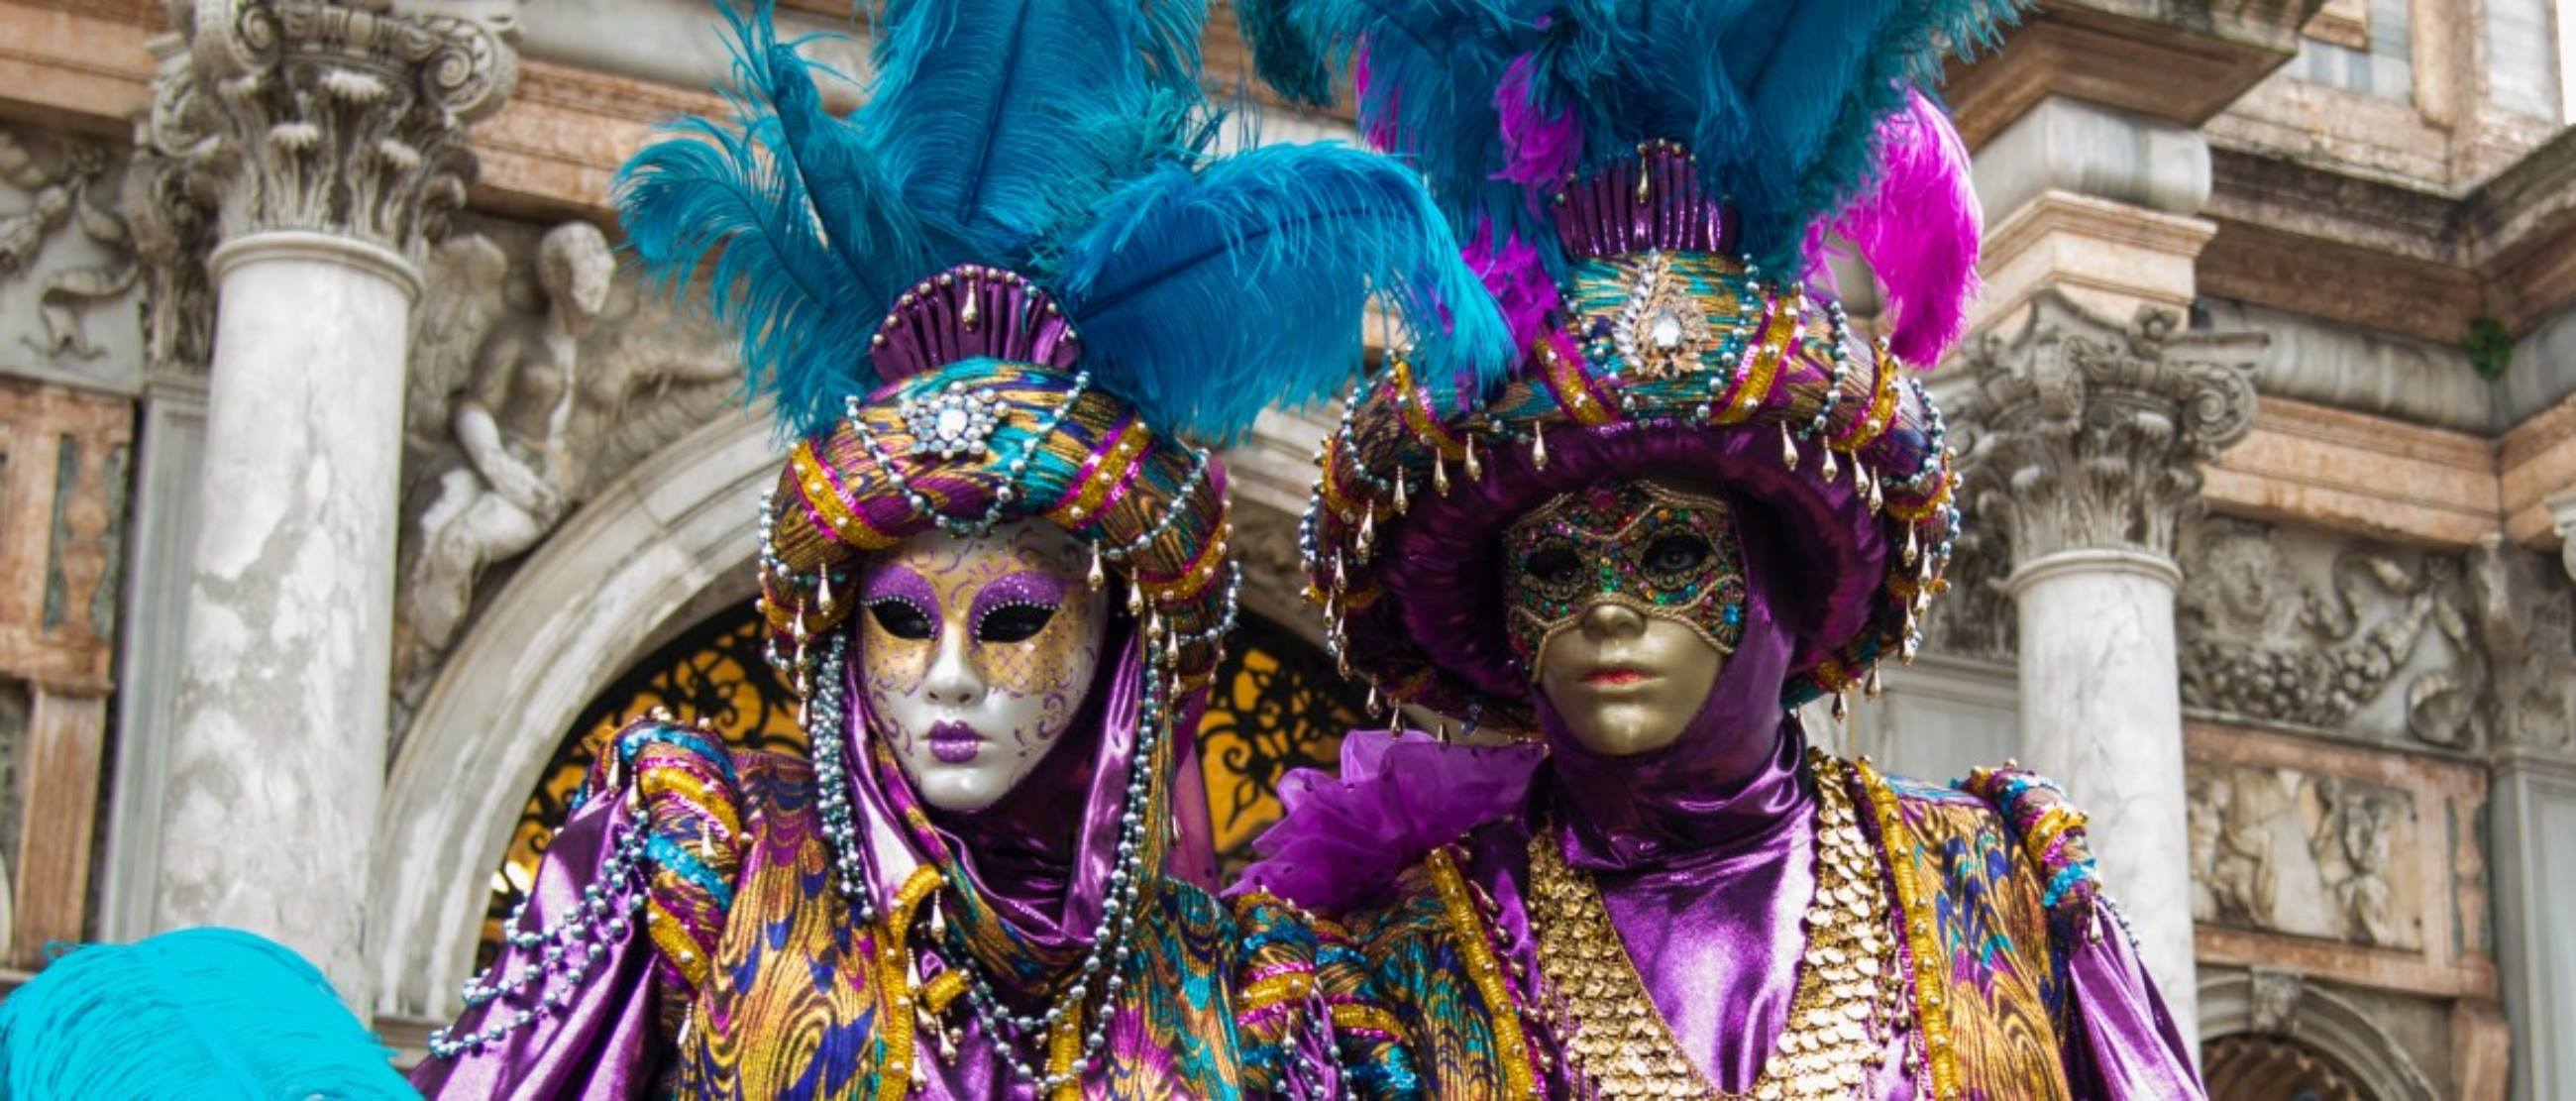 It's-All-About-Fun-At-The-Venice-Carnival